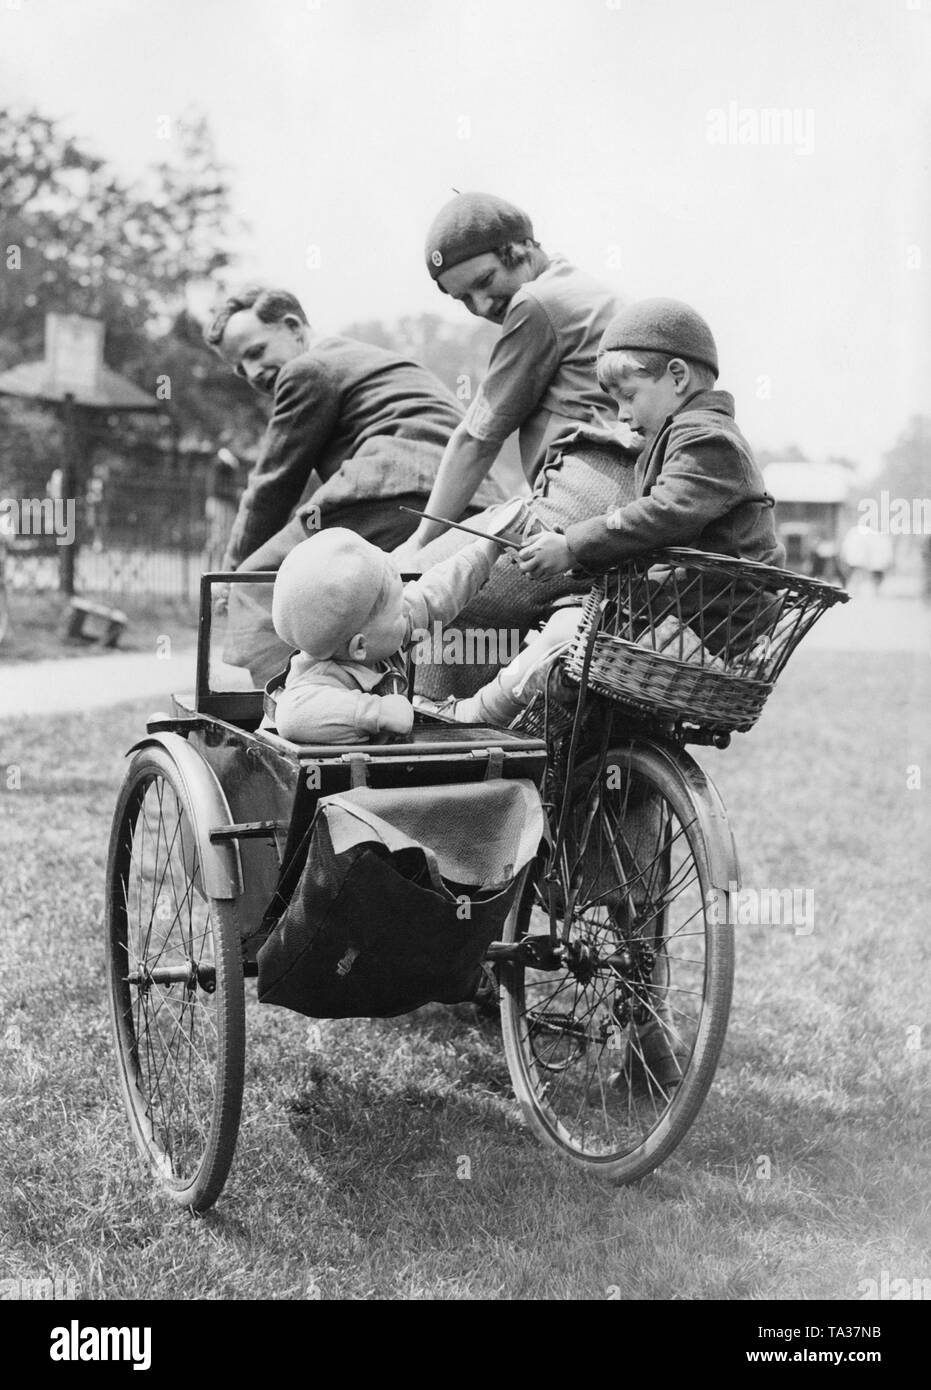 A family with two children is riding a tandem with sidecar through a park. The parents look at their two playing children. The older boy holds a can and a stick in his hand, while the younger child reaches for it. - Stock Image